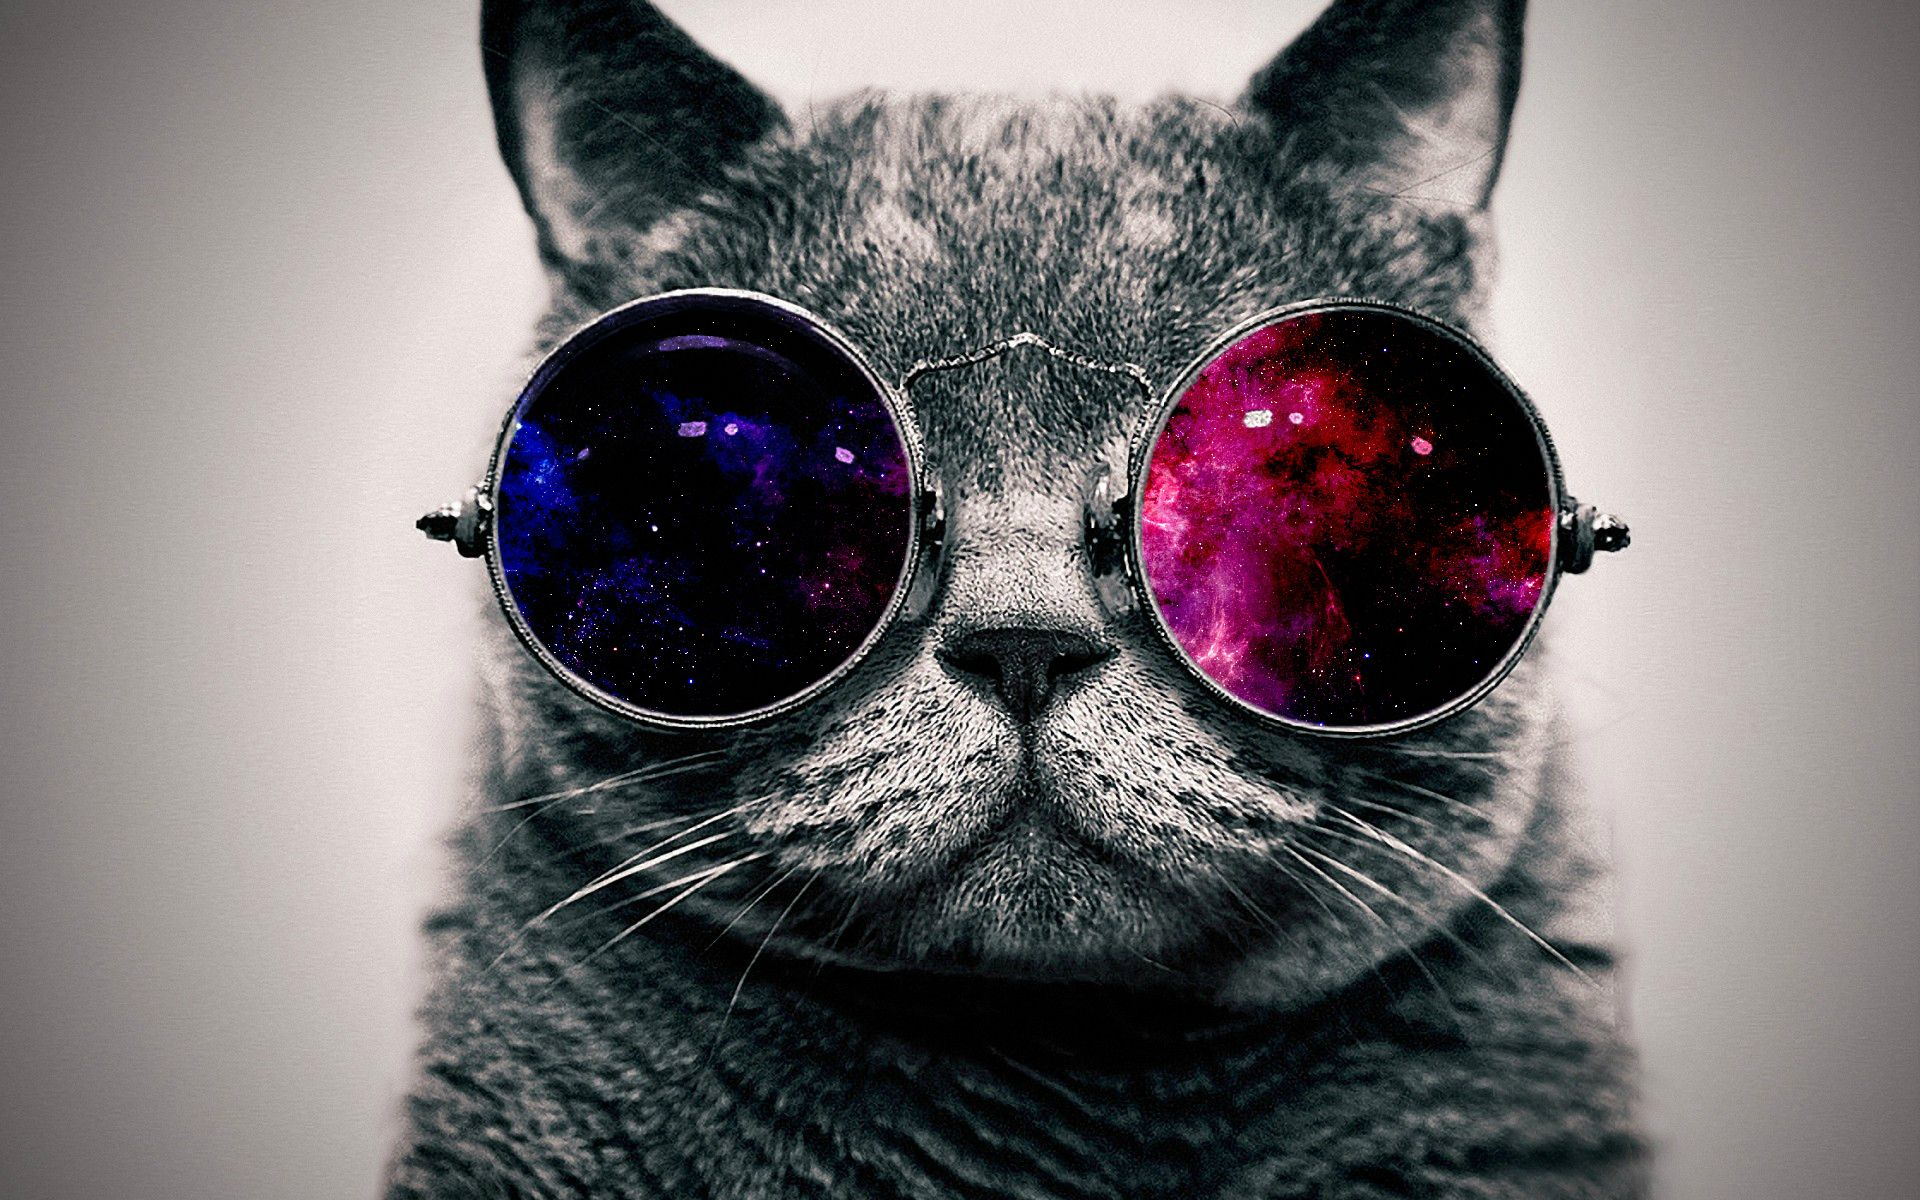 Cool Cat Hd Wallpapers 19201200 121583 HD Wallpaper Res 1920x1200 1920x1200